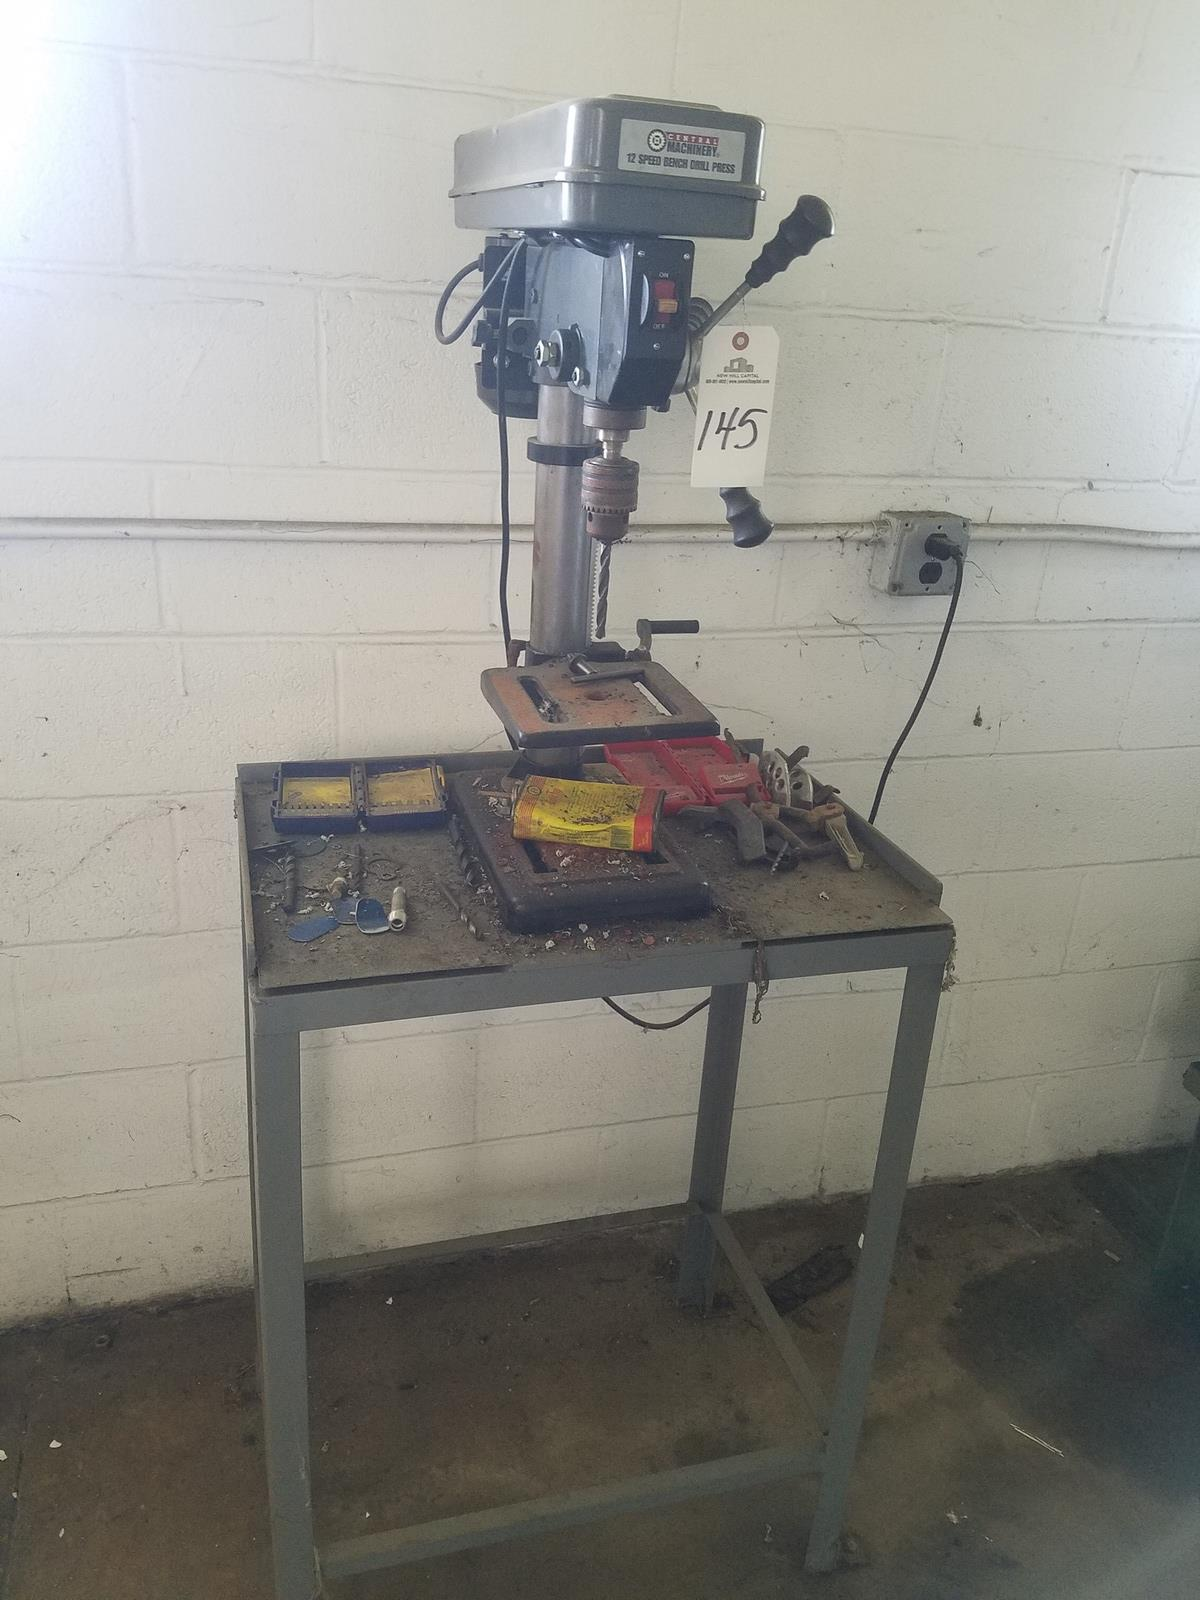 Lot 145 - Central Machinery Bench Drill Press   Rig Fee: $50